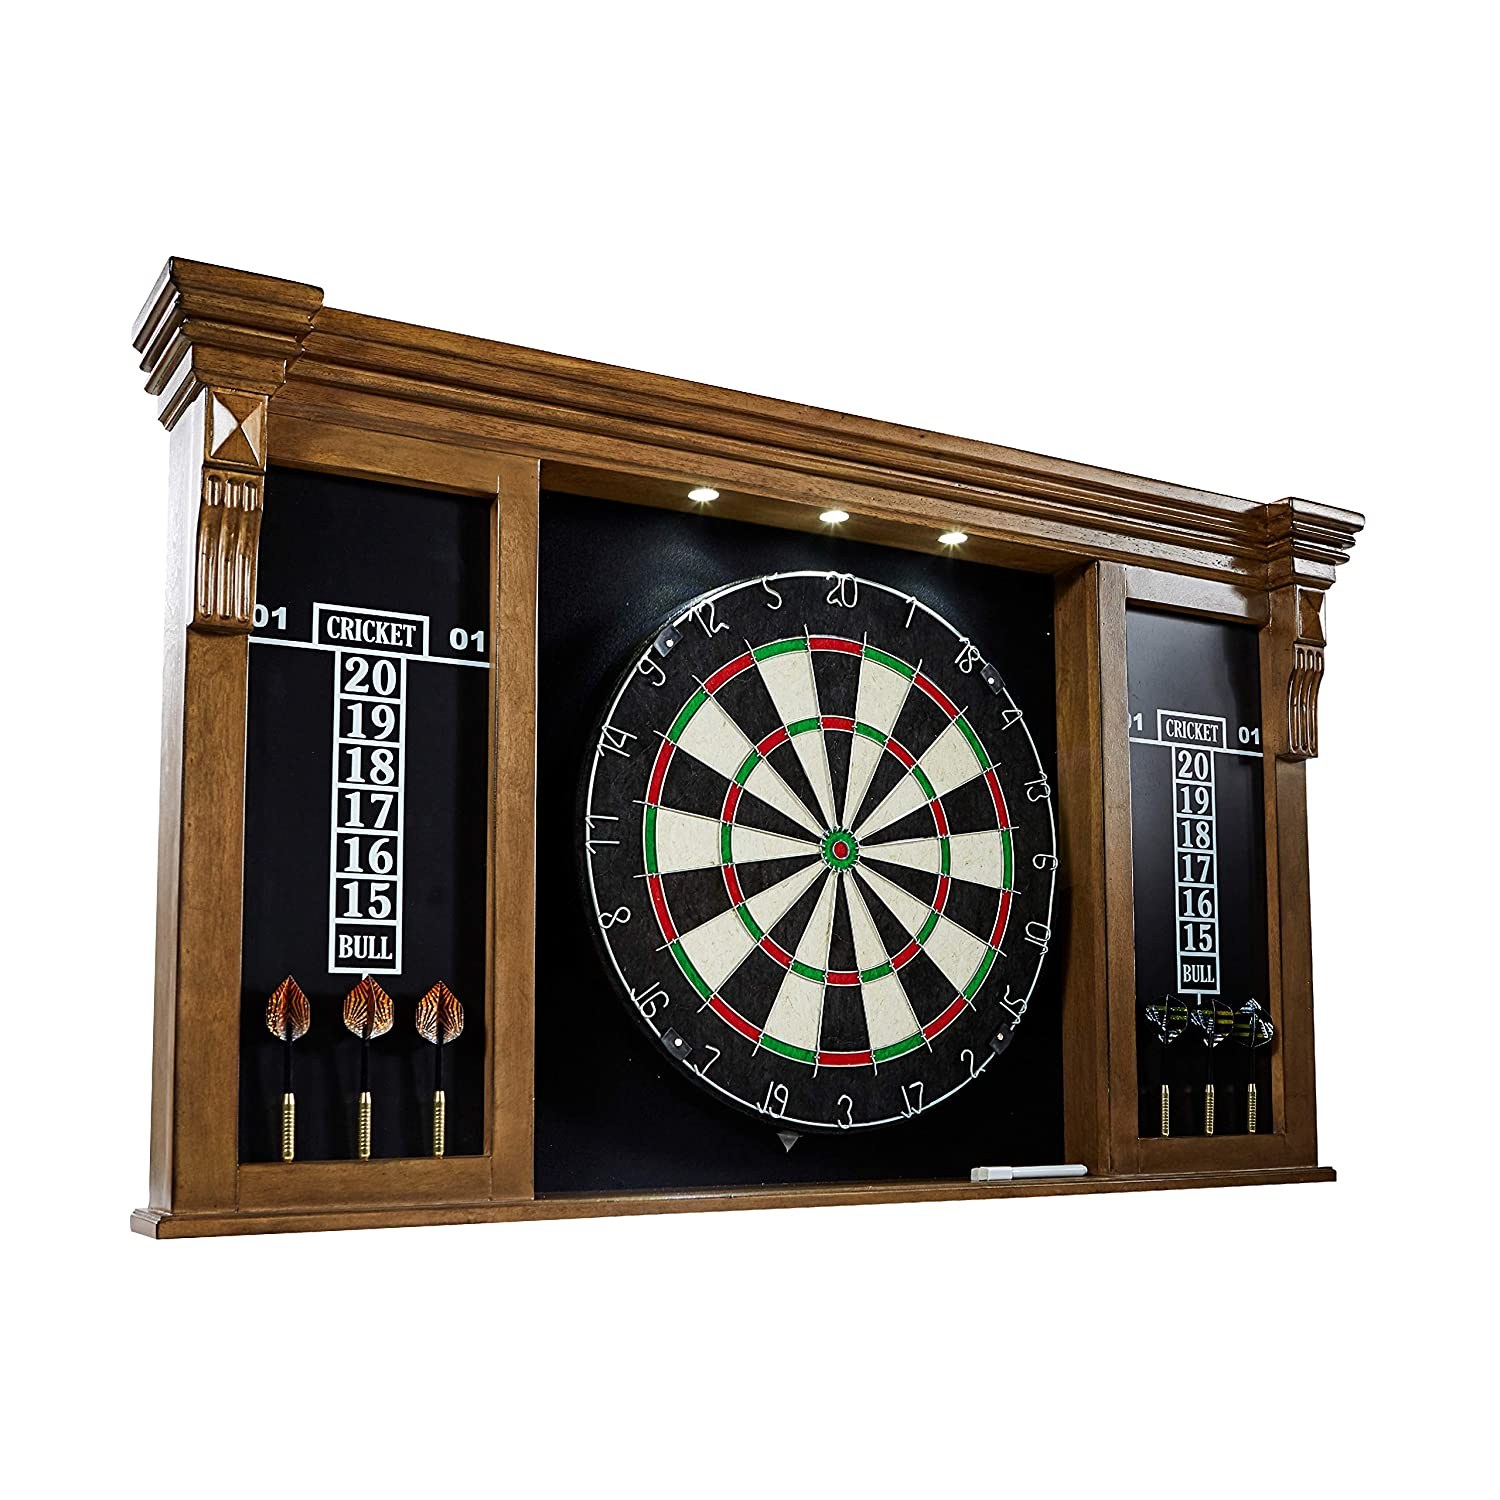 Barrington Collection Bristle Dartboard Cabinet Set: Professional Hanging Classic Sisal Dartboard with Self Healing Bristles and Accessories